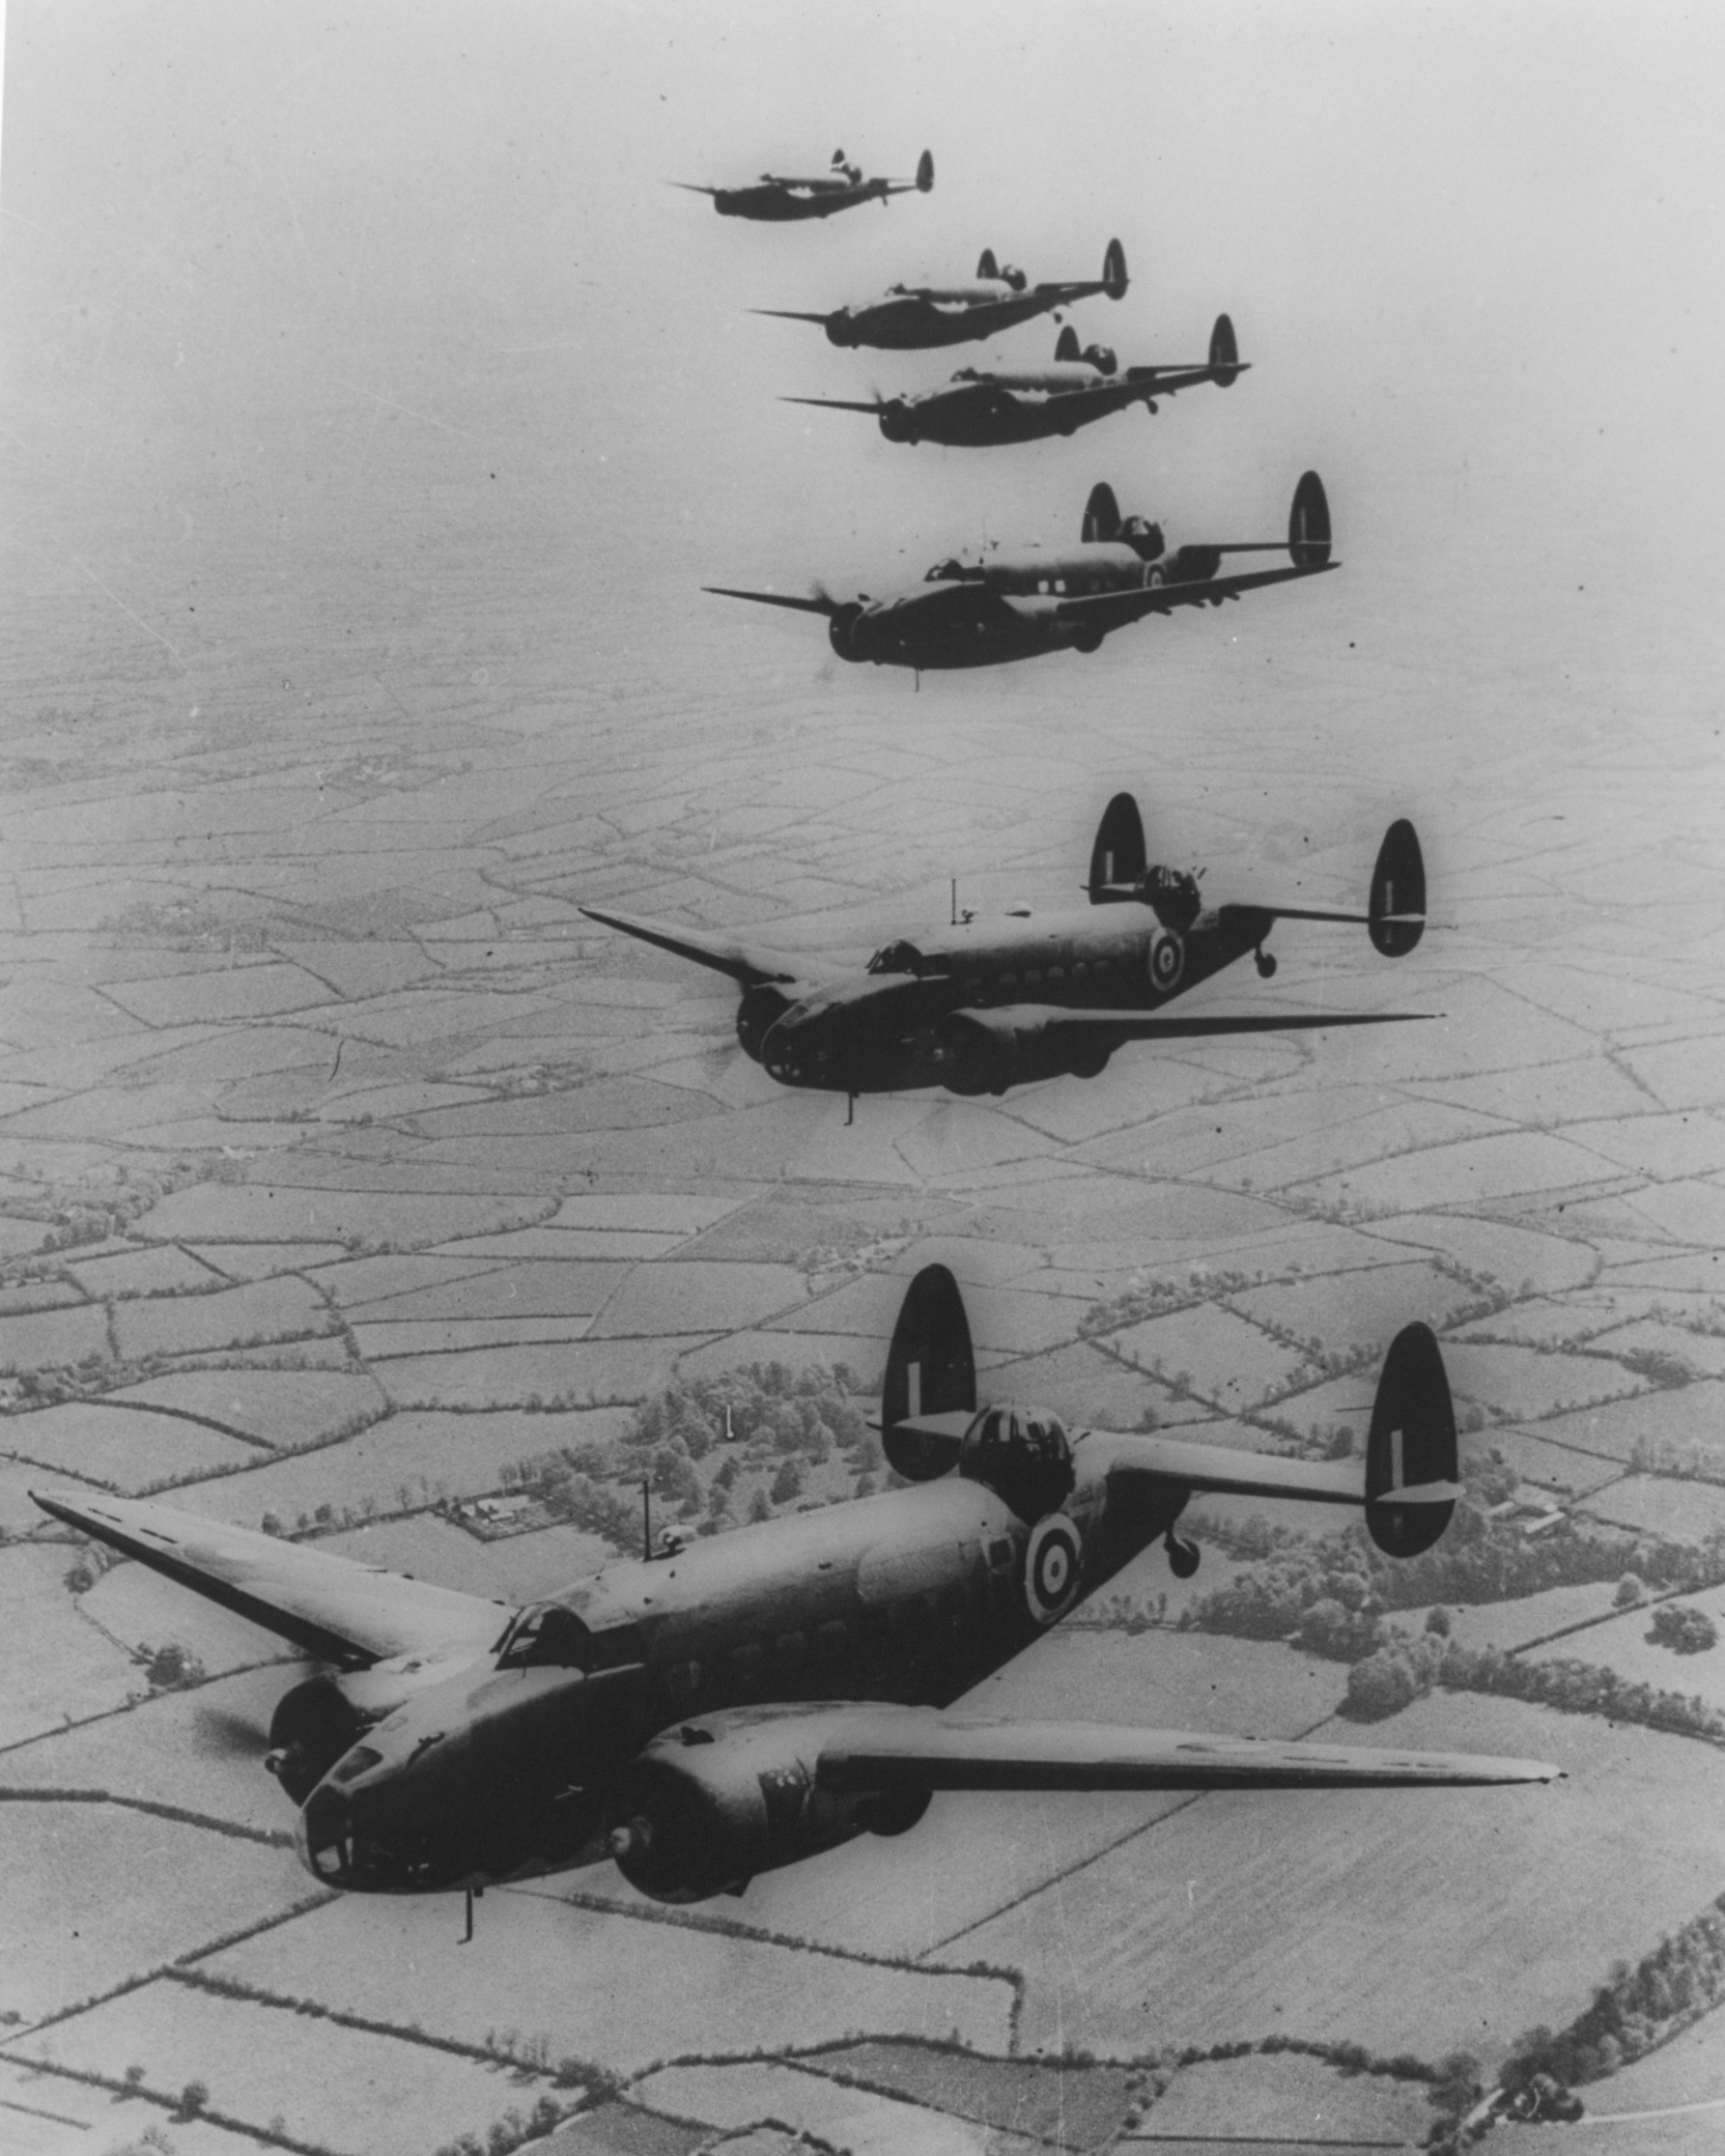 1940  - Formation flight of six Hudson's over England.